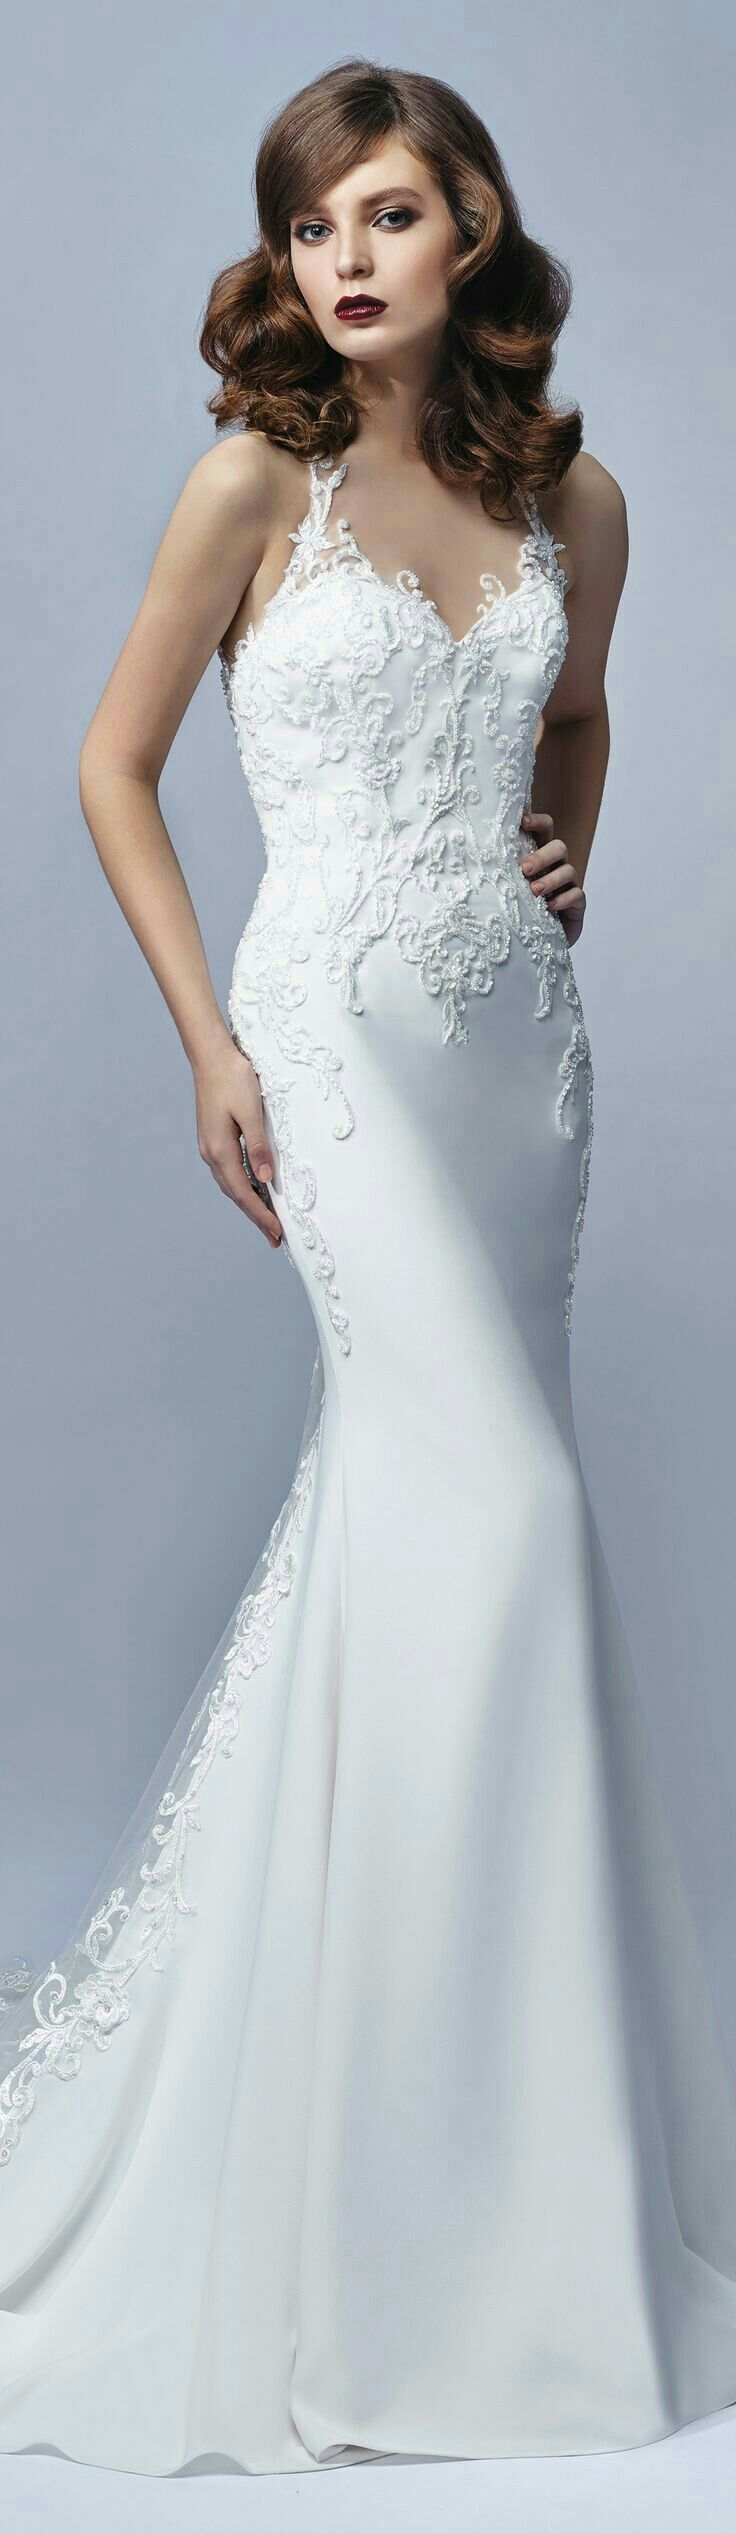 349 best Vestidos images on Pinterest | Ao dai, Asian ladies and ...